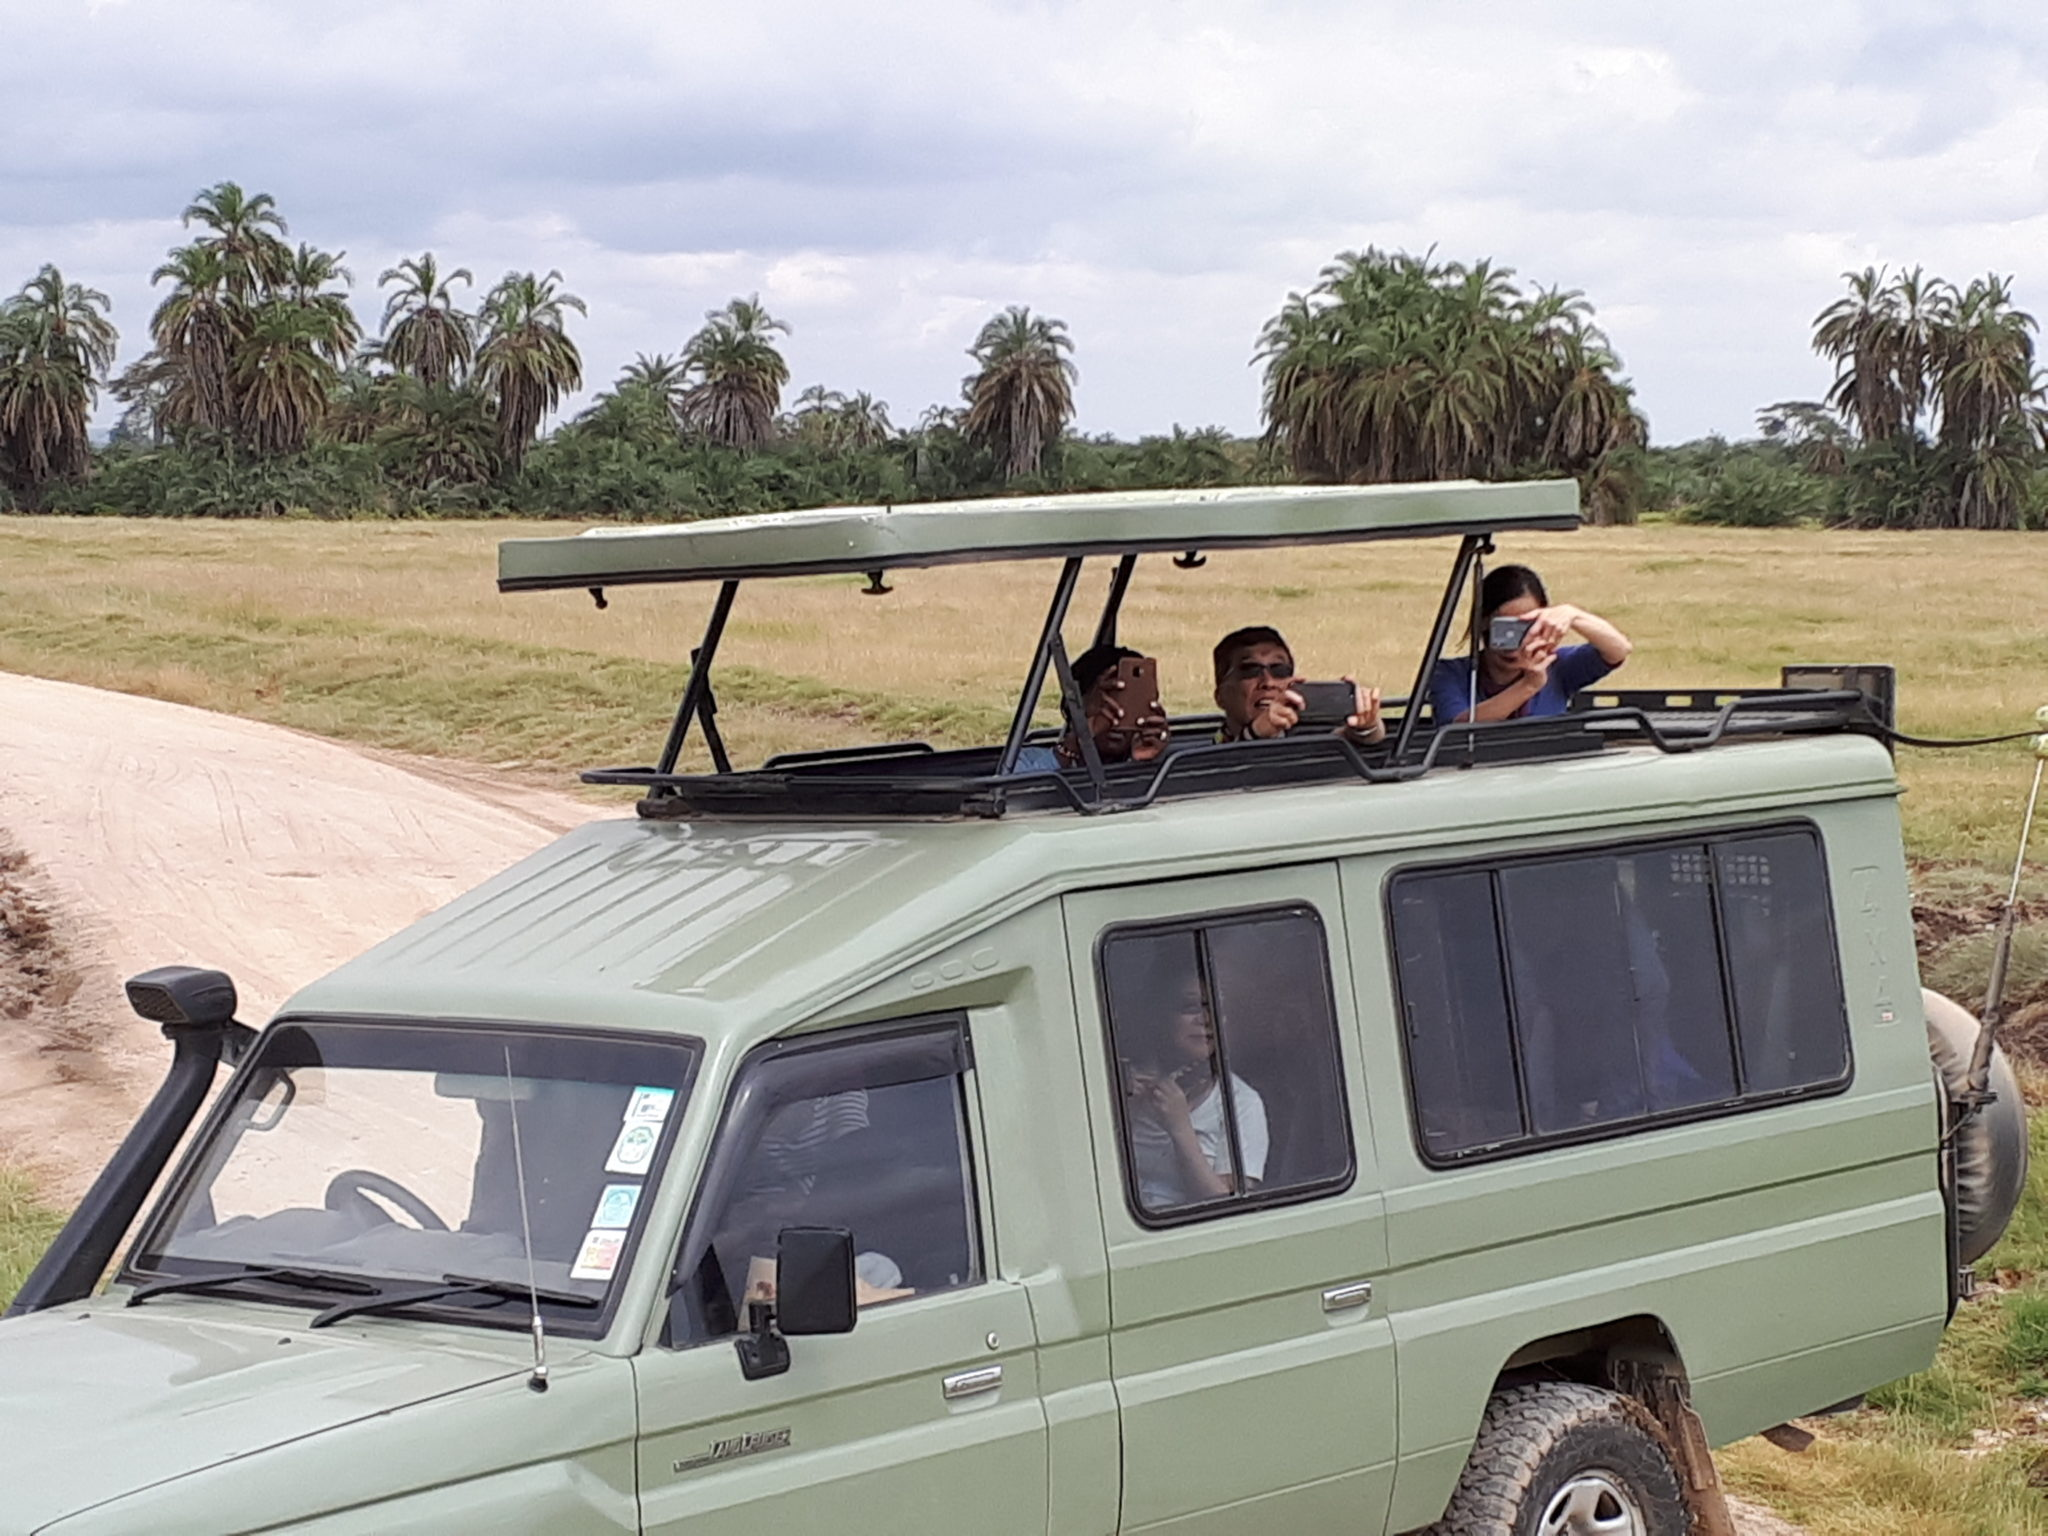 The excitement of the first Safari